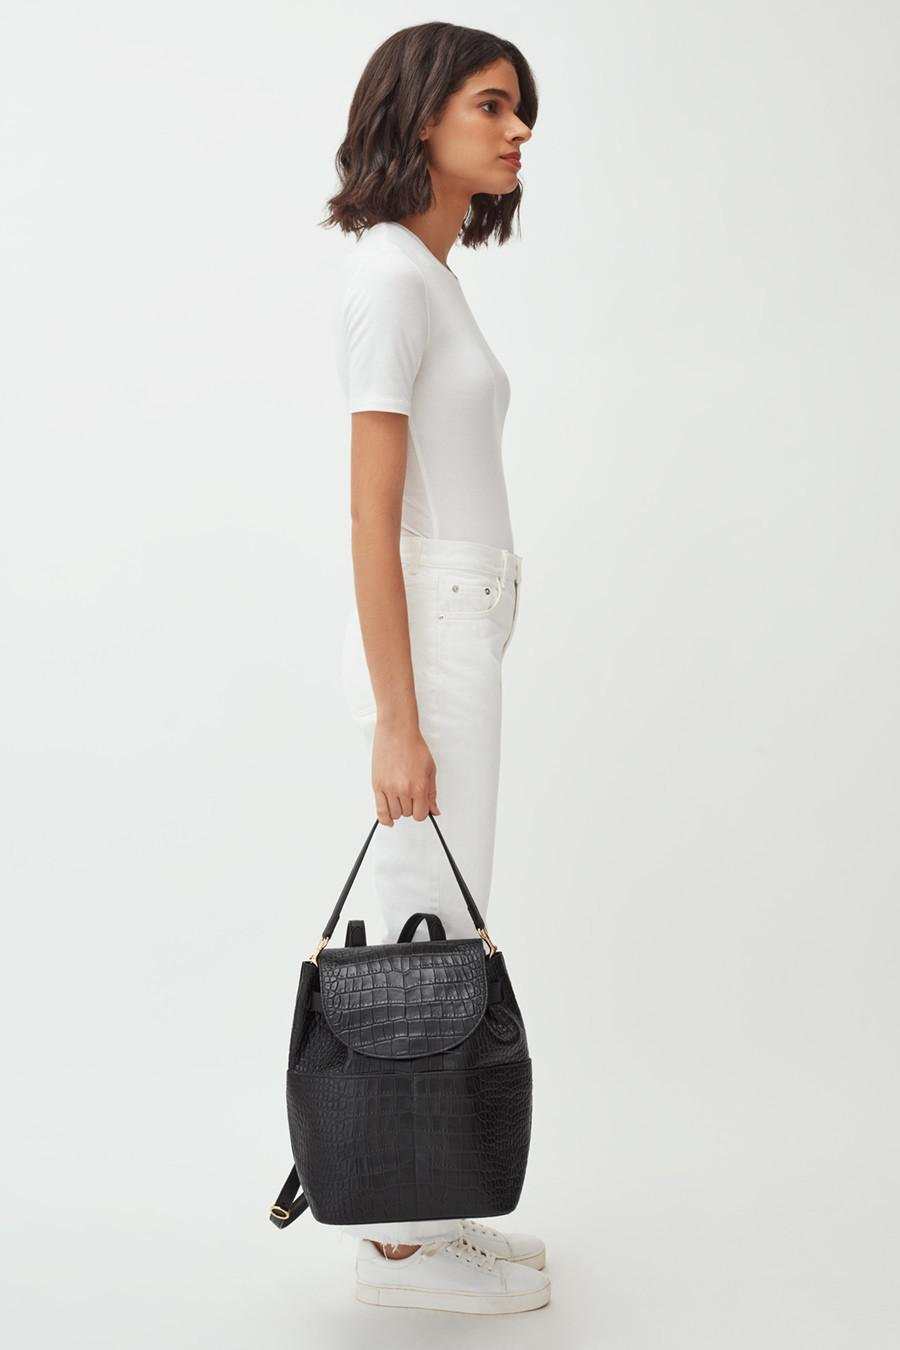 Women's Leather Backpack in Textured Black | Croc-Embossed by Cuyana 6